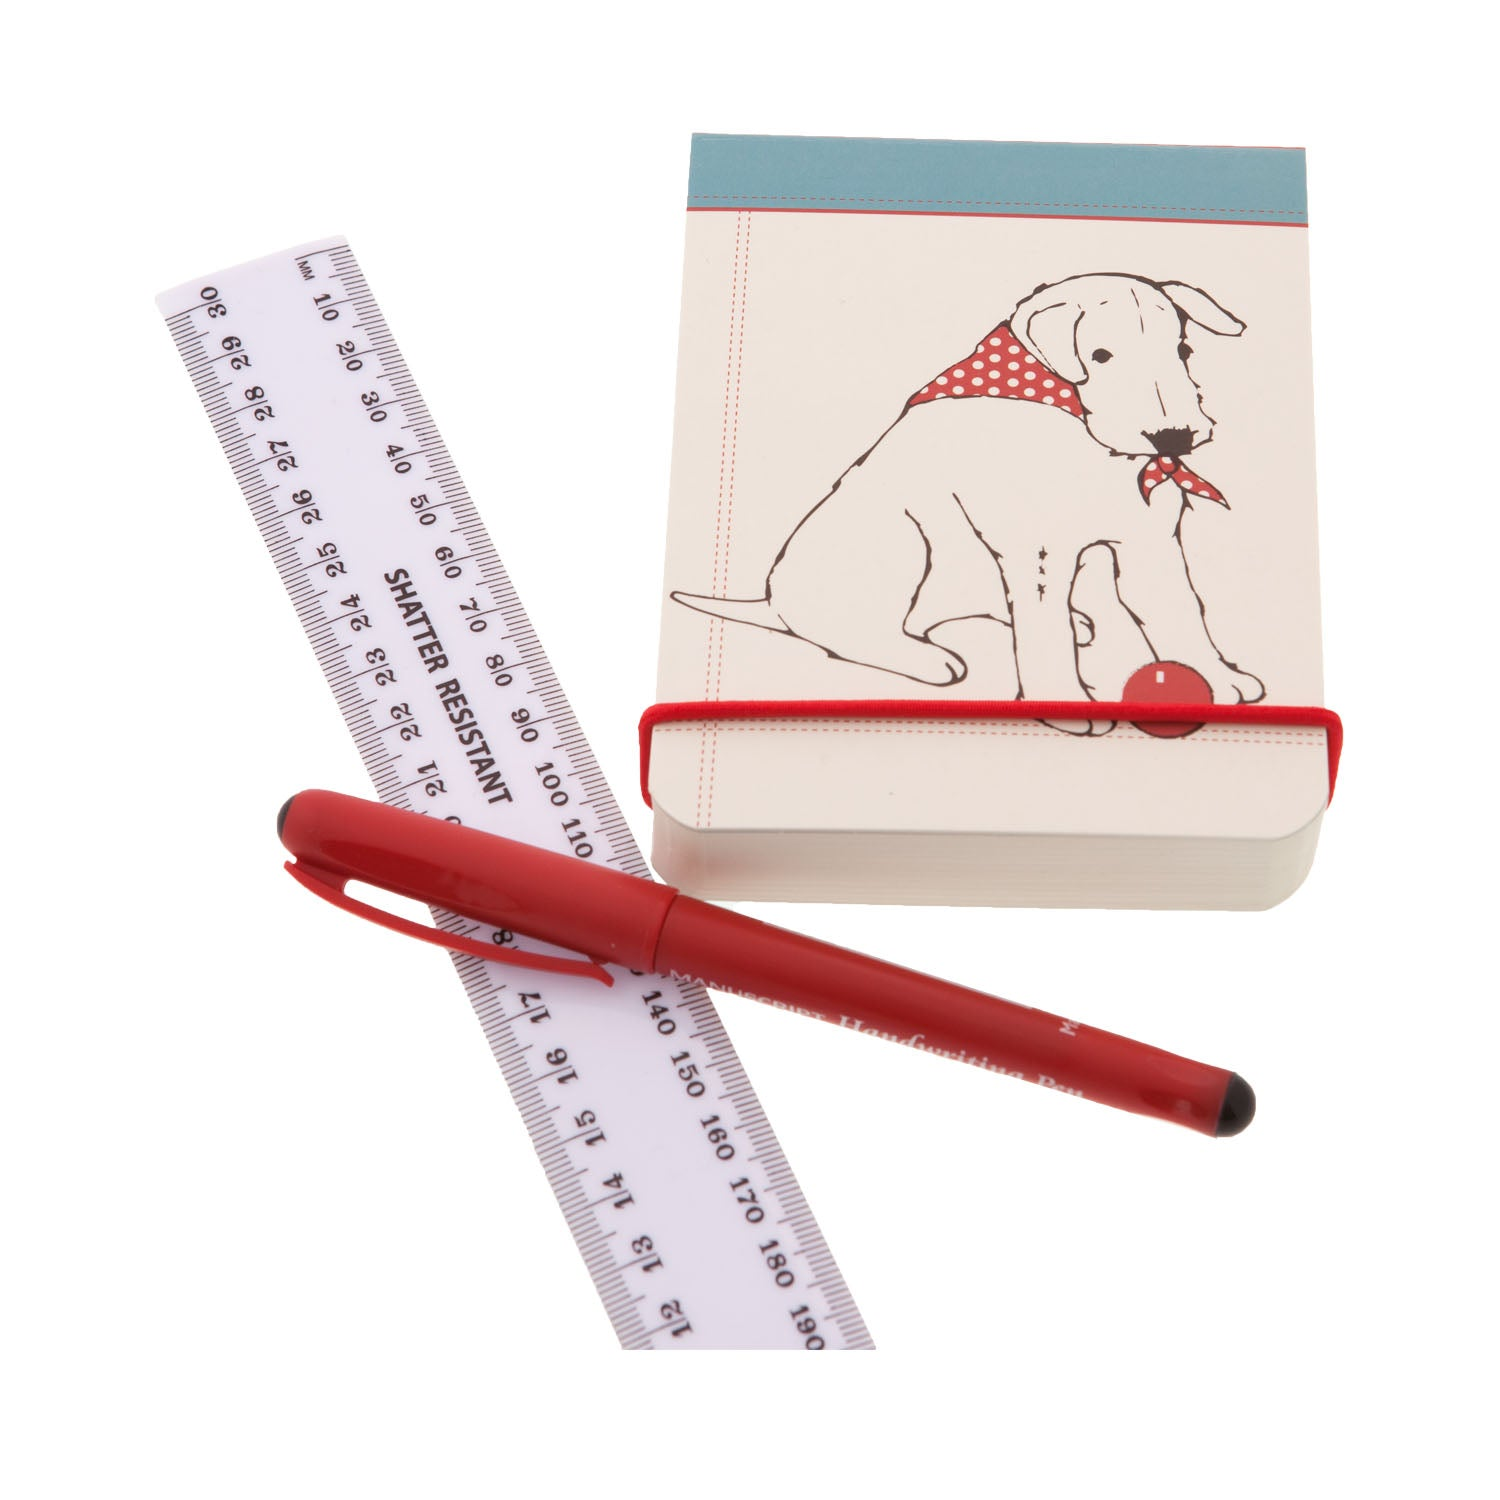 DogKrazyGifts - Douglas The Boy Wonder Flip Notepad - part of the Little Dog Range available from Dog Krazy Gifts